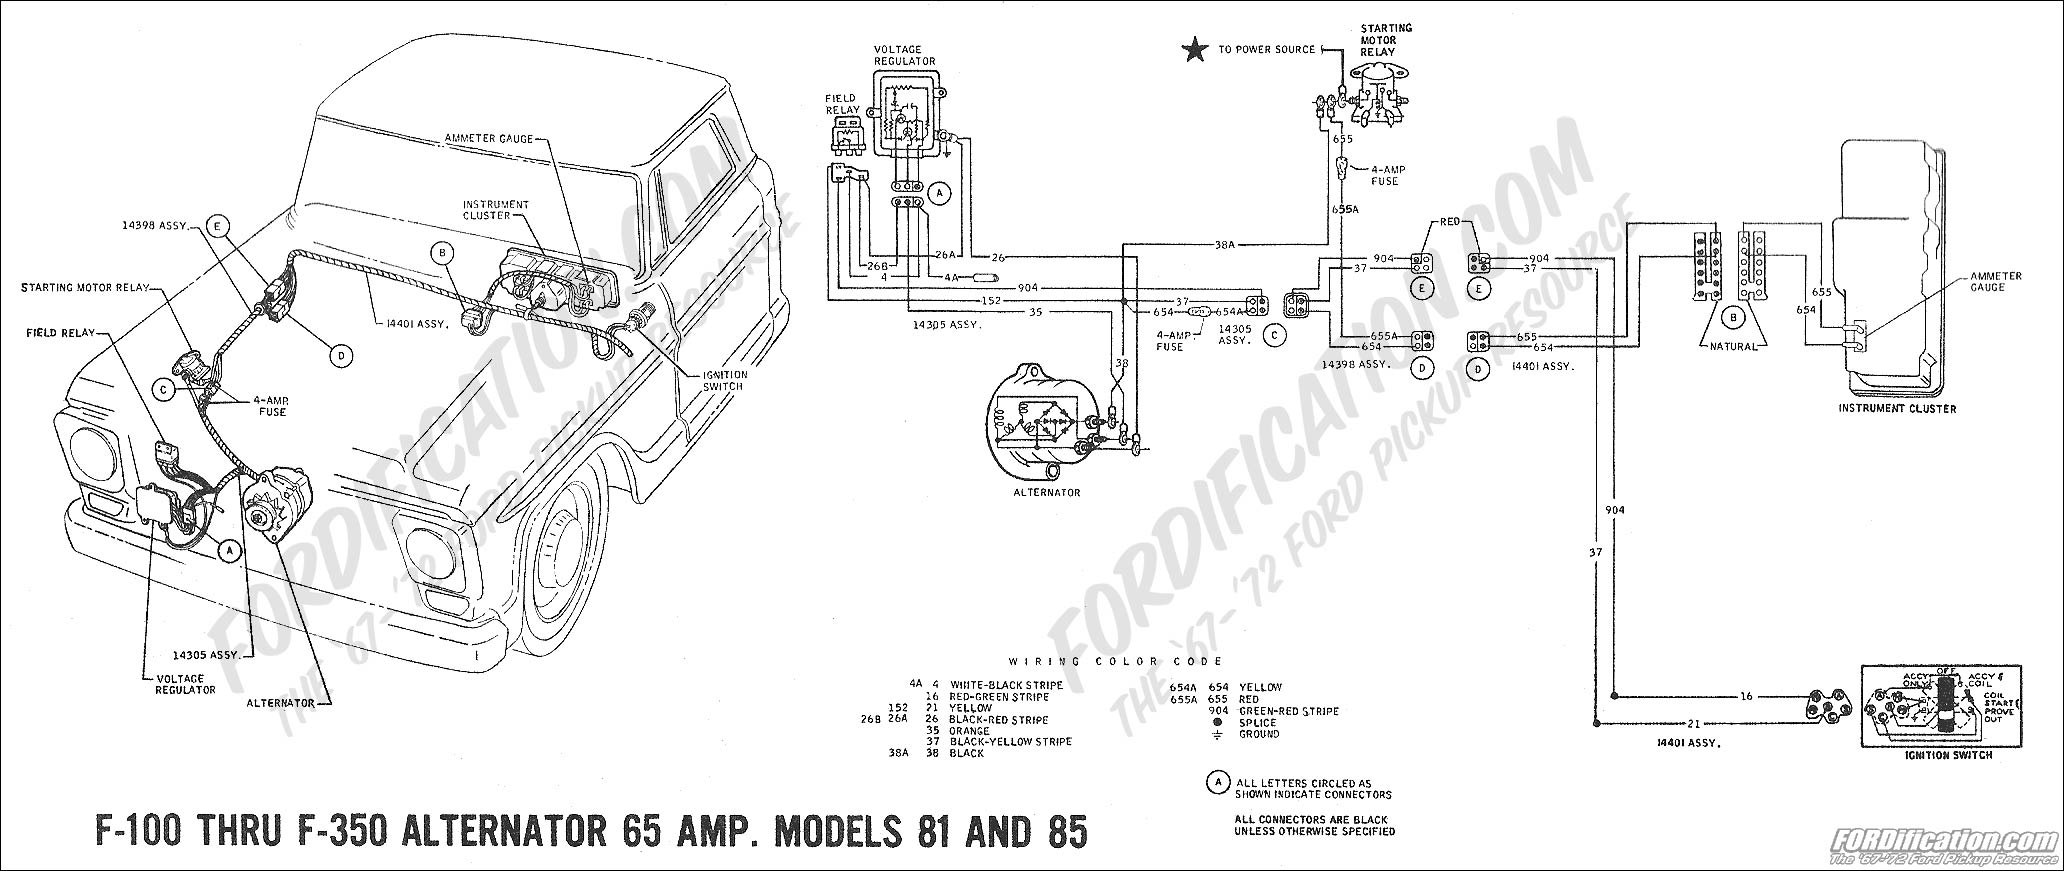 1966 Ford F100 Charging System Wiring Diagram : 45 Wiring